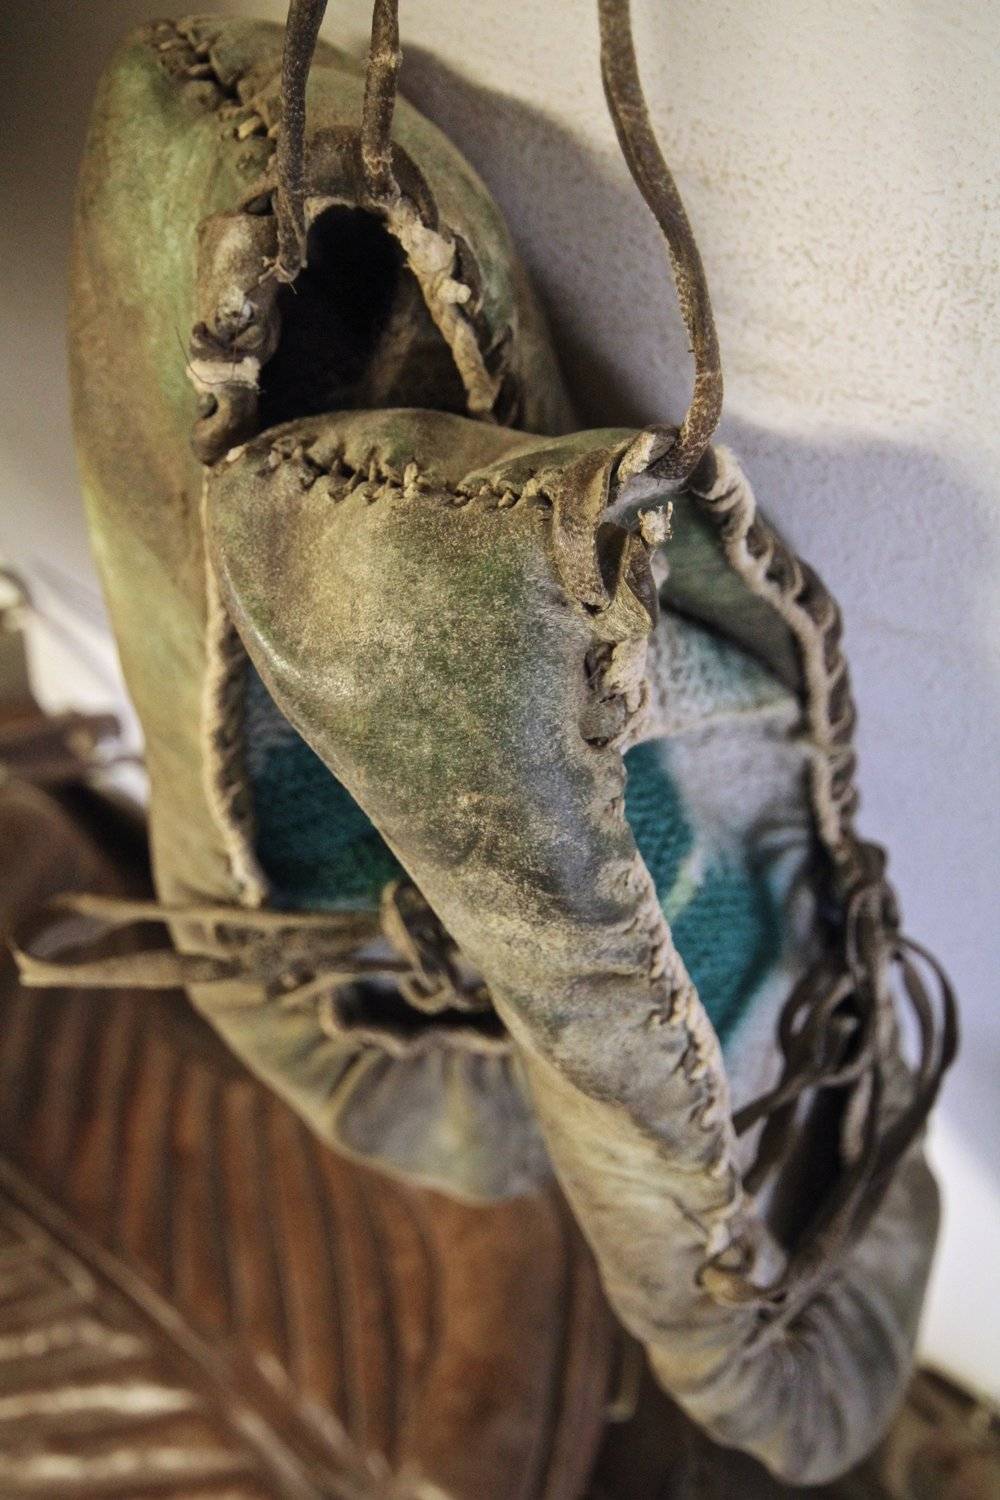 Traditional Icelandic fish skin shoes. Photo courtesy of Meadow Coldon.